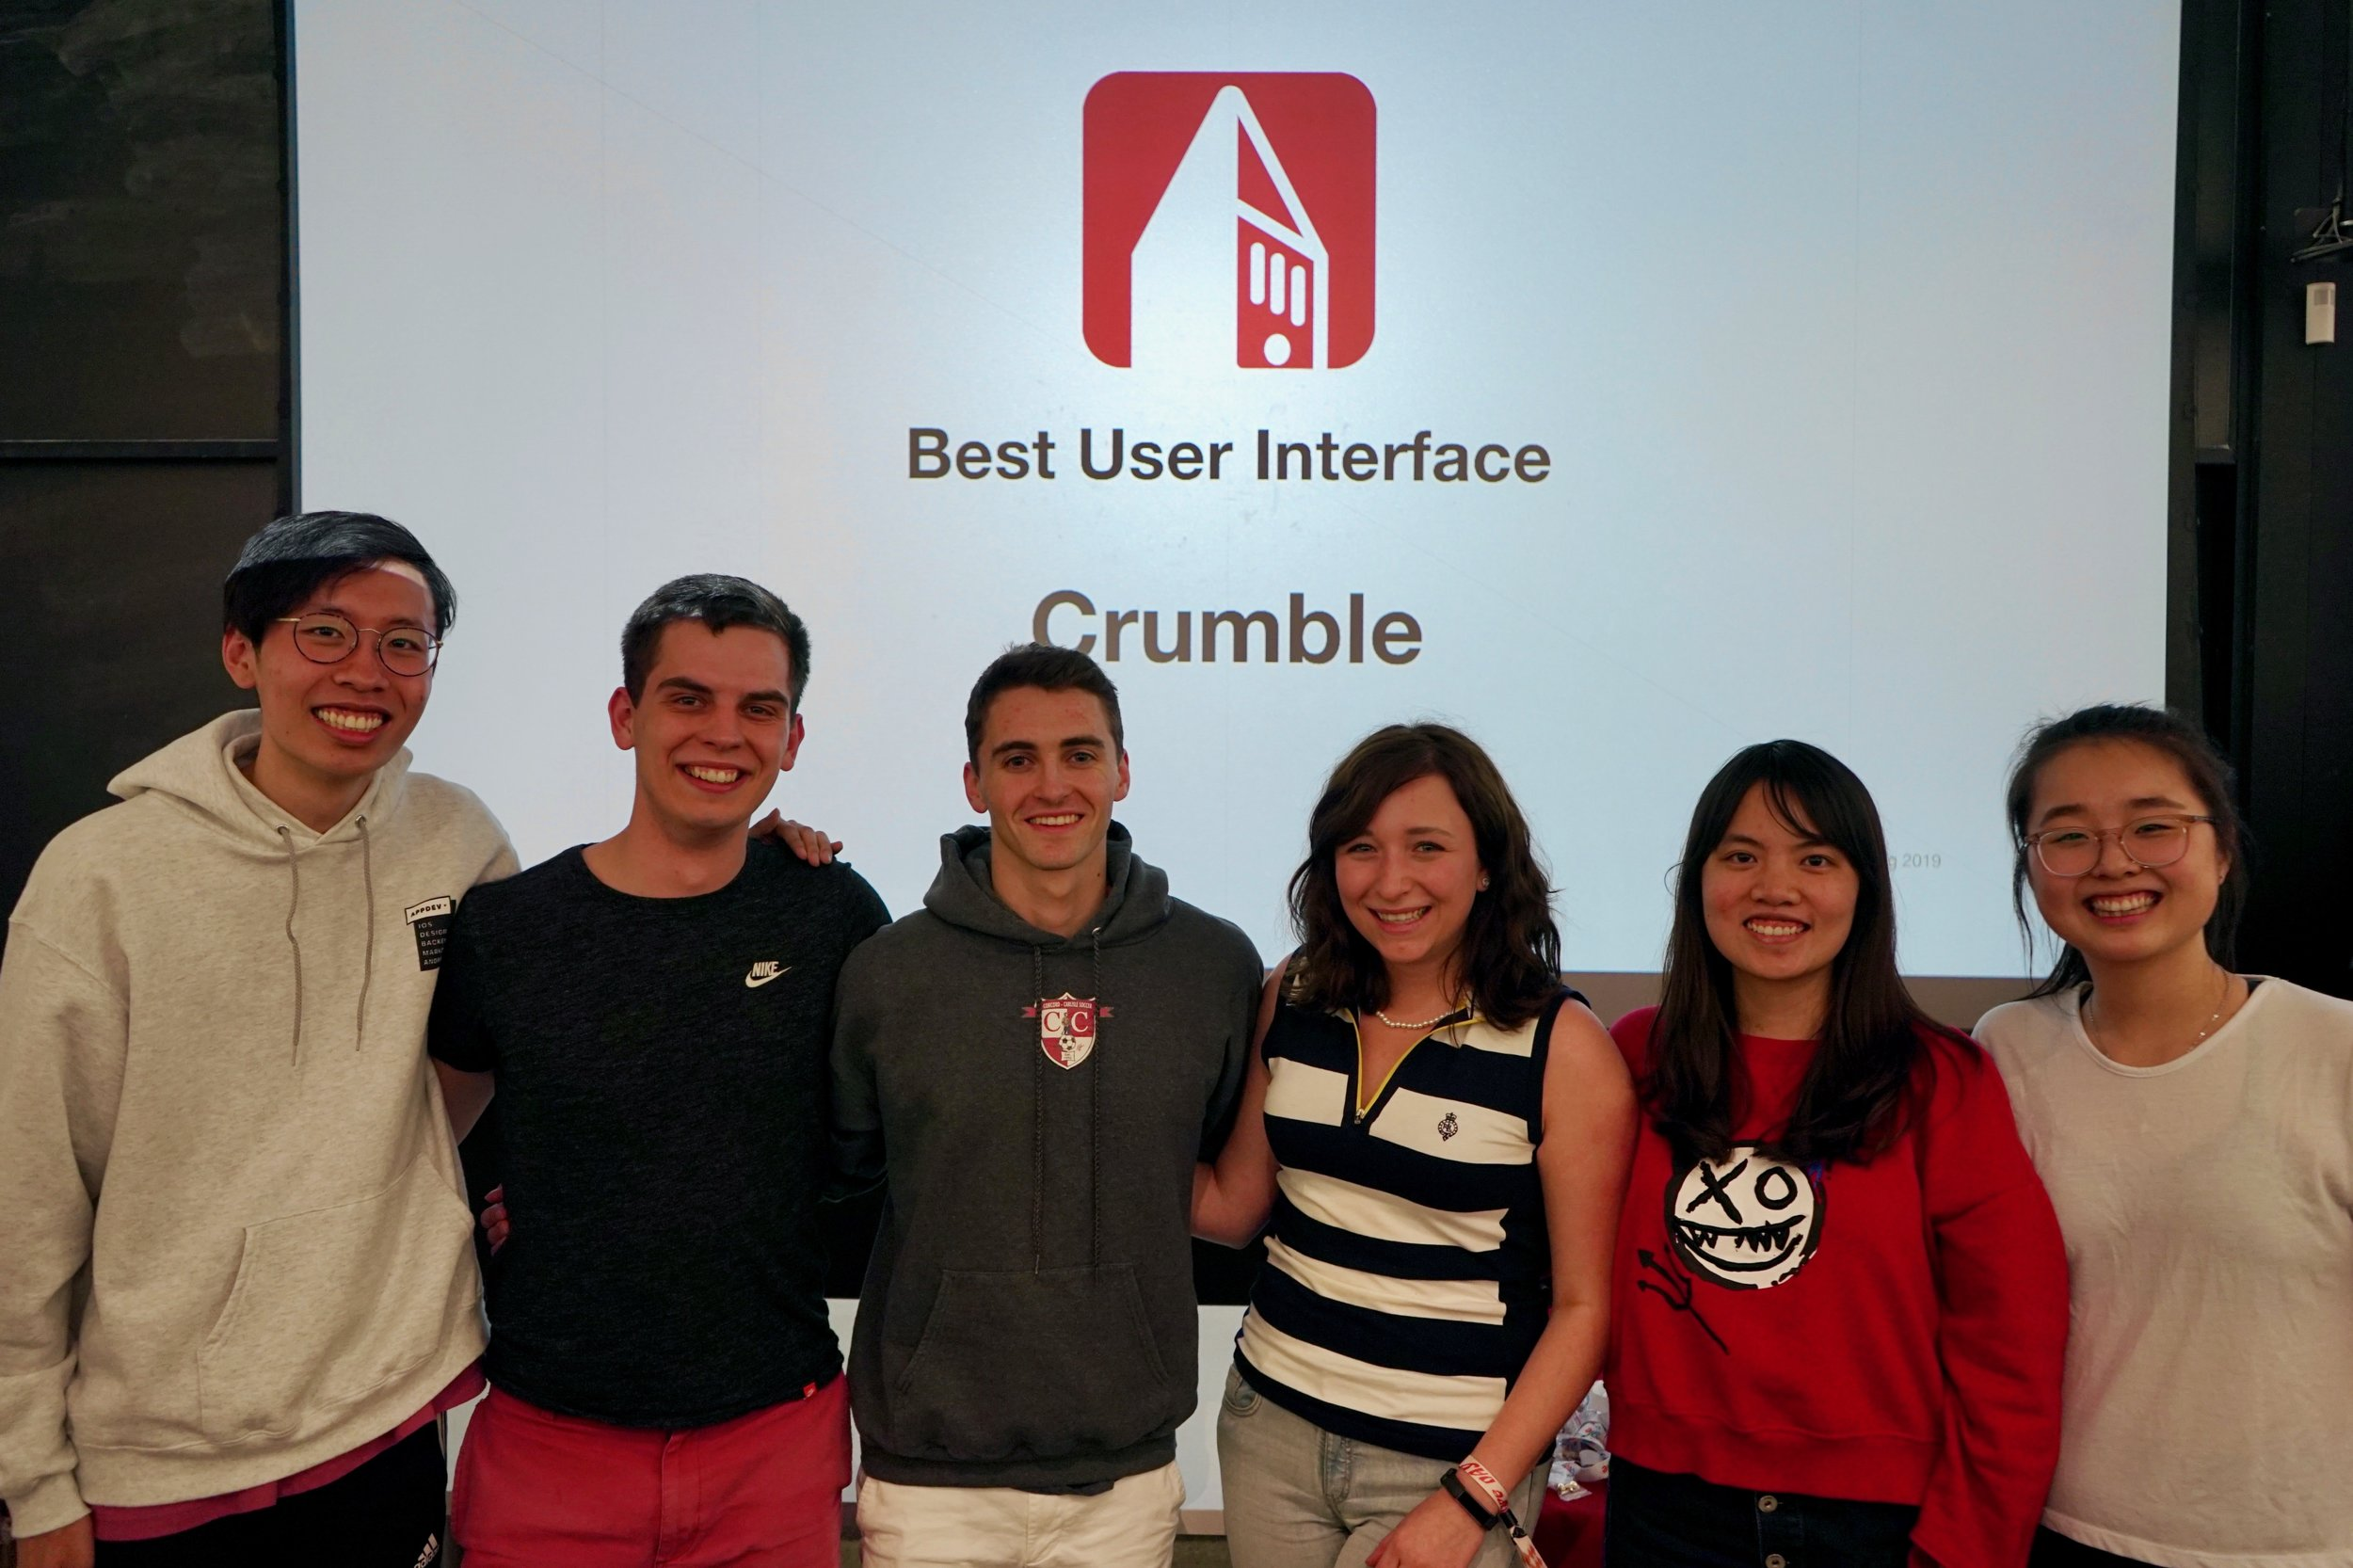 Young Kim (TA), Nathan Stack (iOS), Will Tappen (Backend), Beth Mieczkowski (iOS), Yue Sun (Design), Lucy Xu (TA)